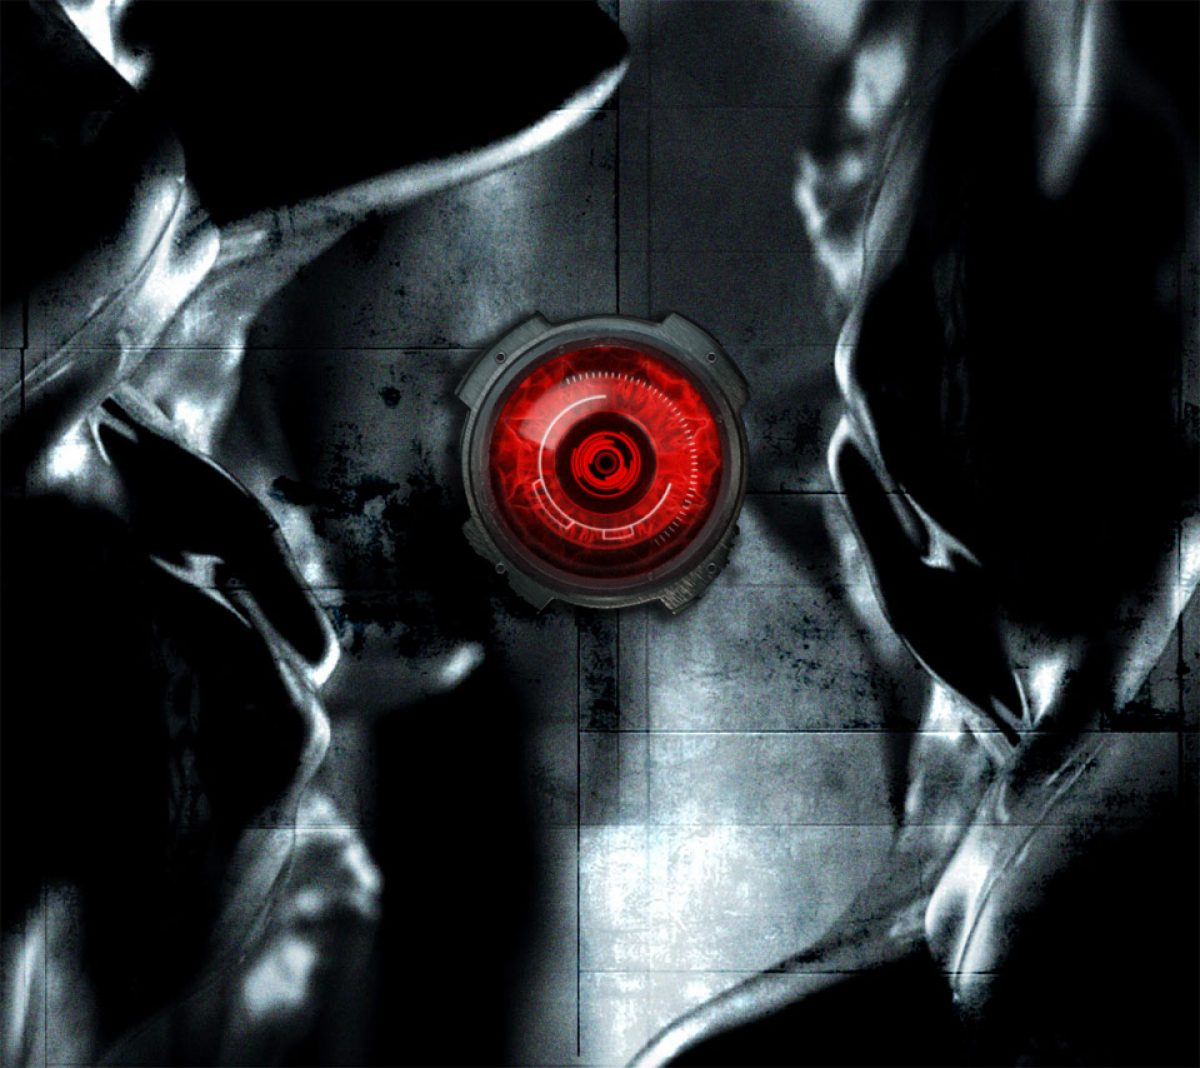 Download: DROID X Red Eye Wallpaper